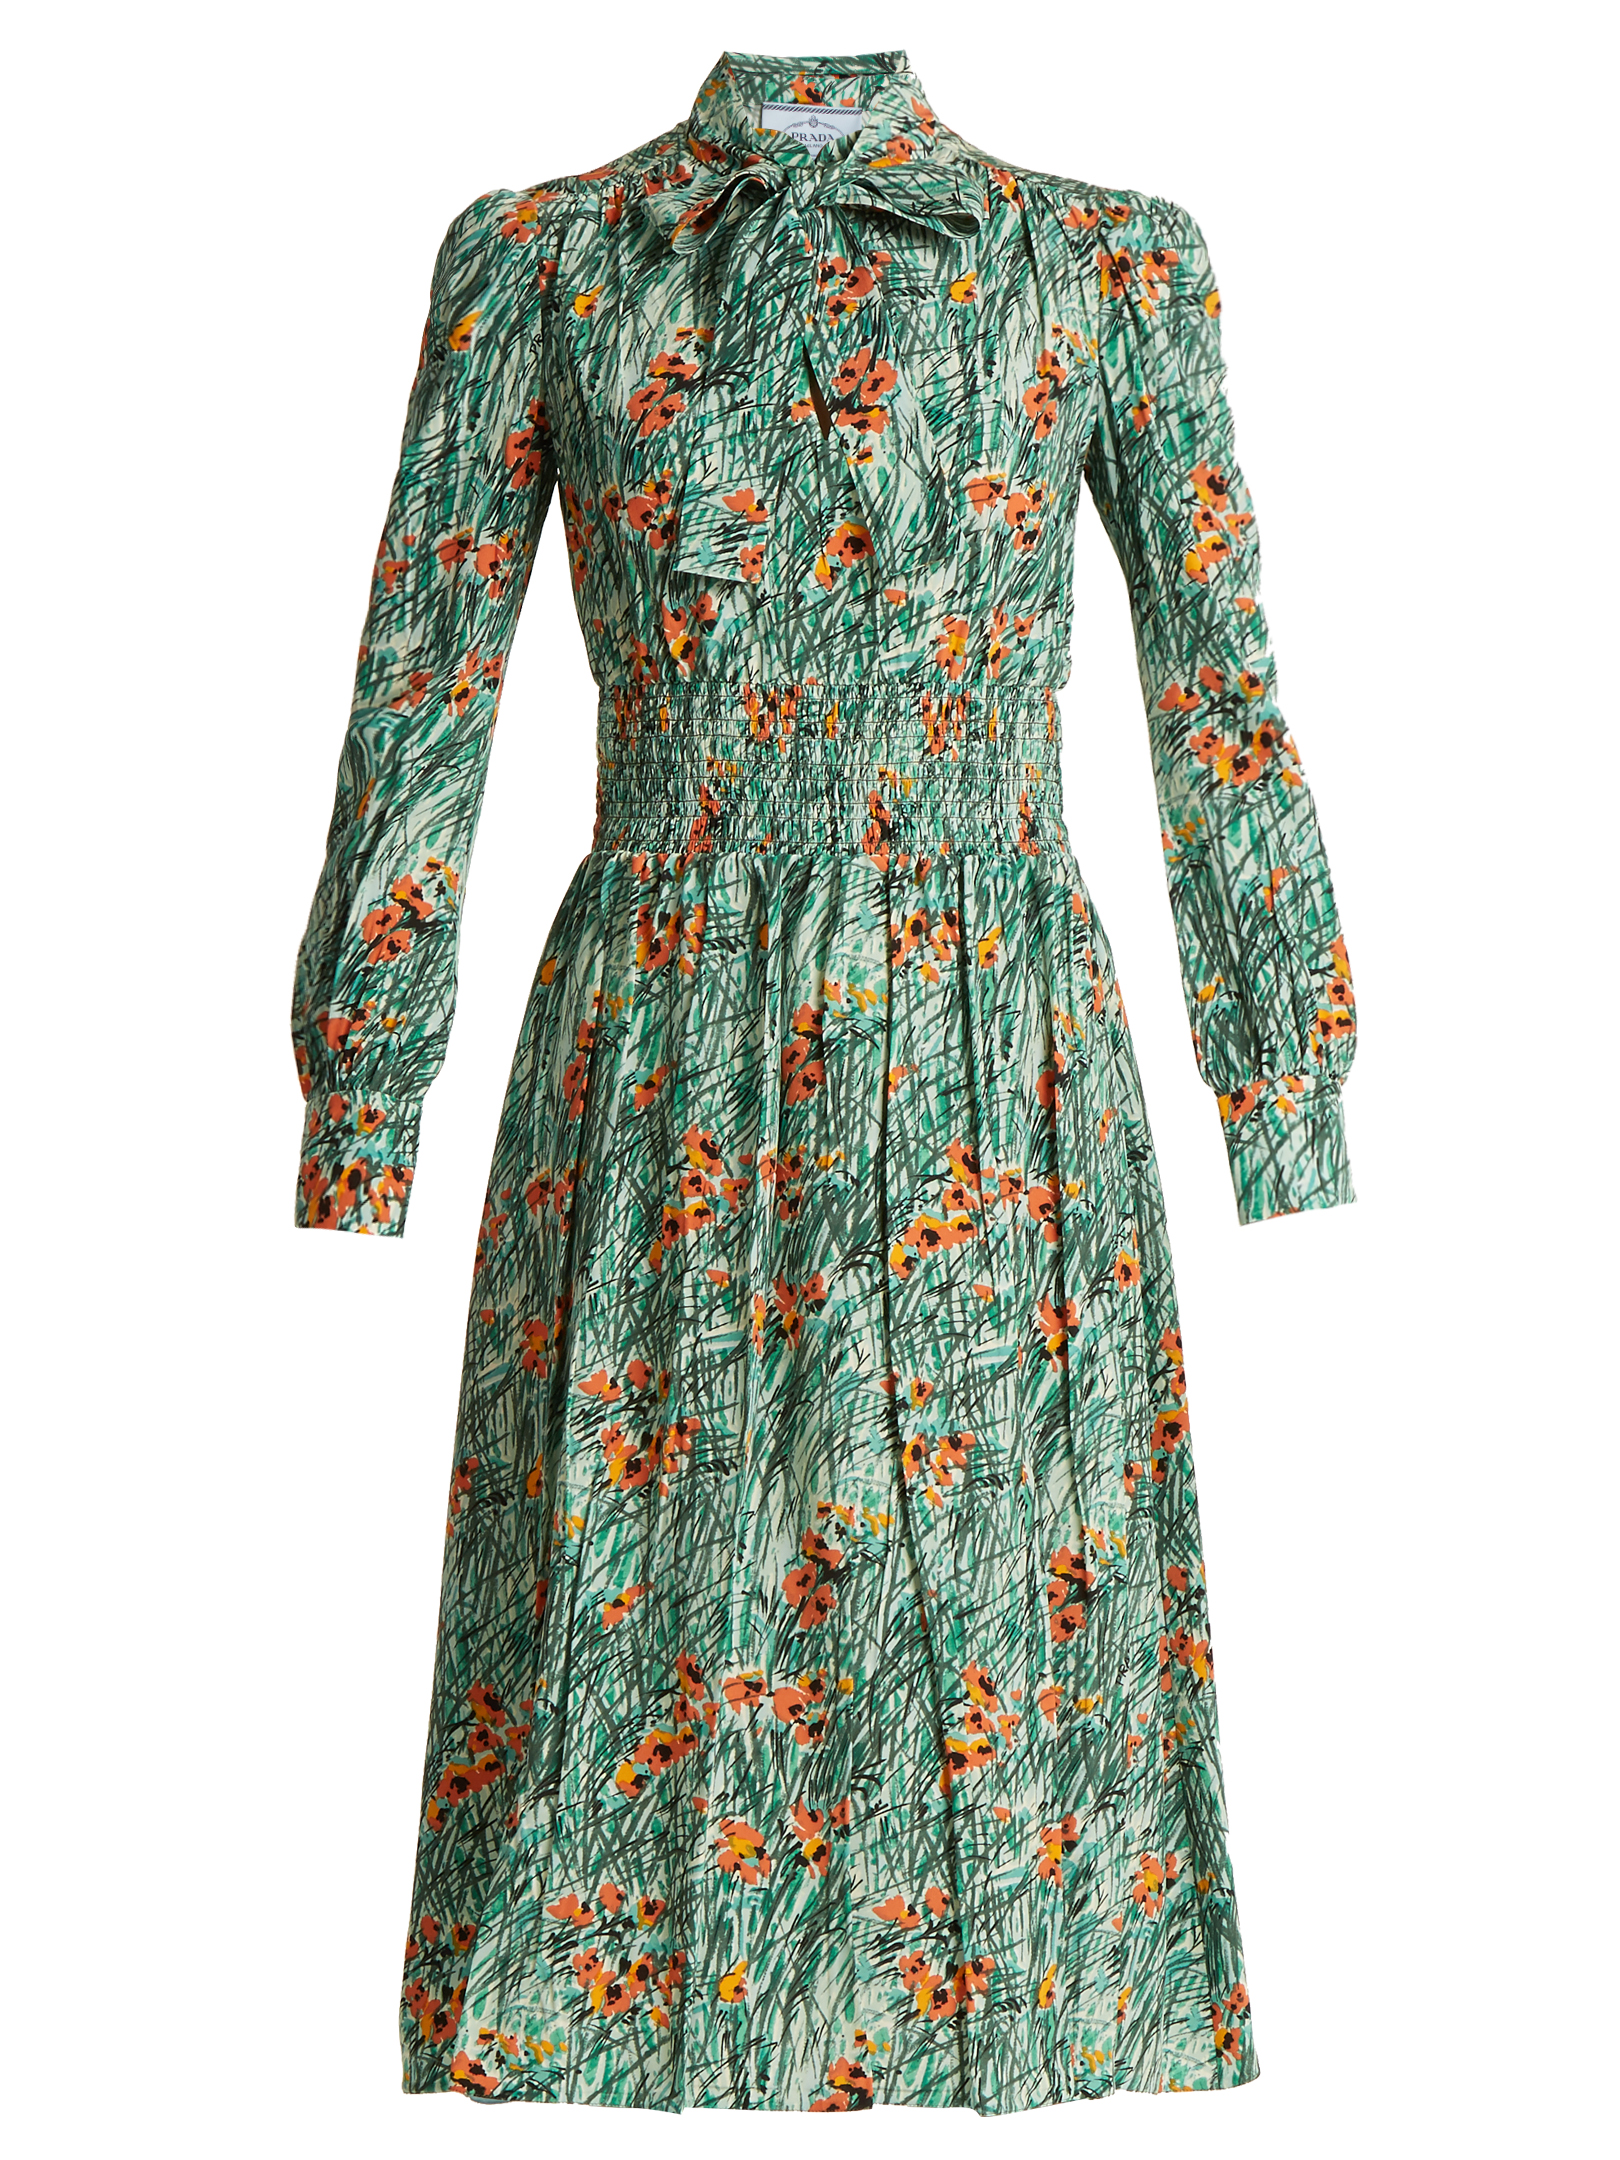 Duchess of Cambridge Prada dress